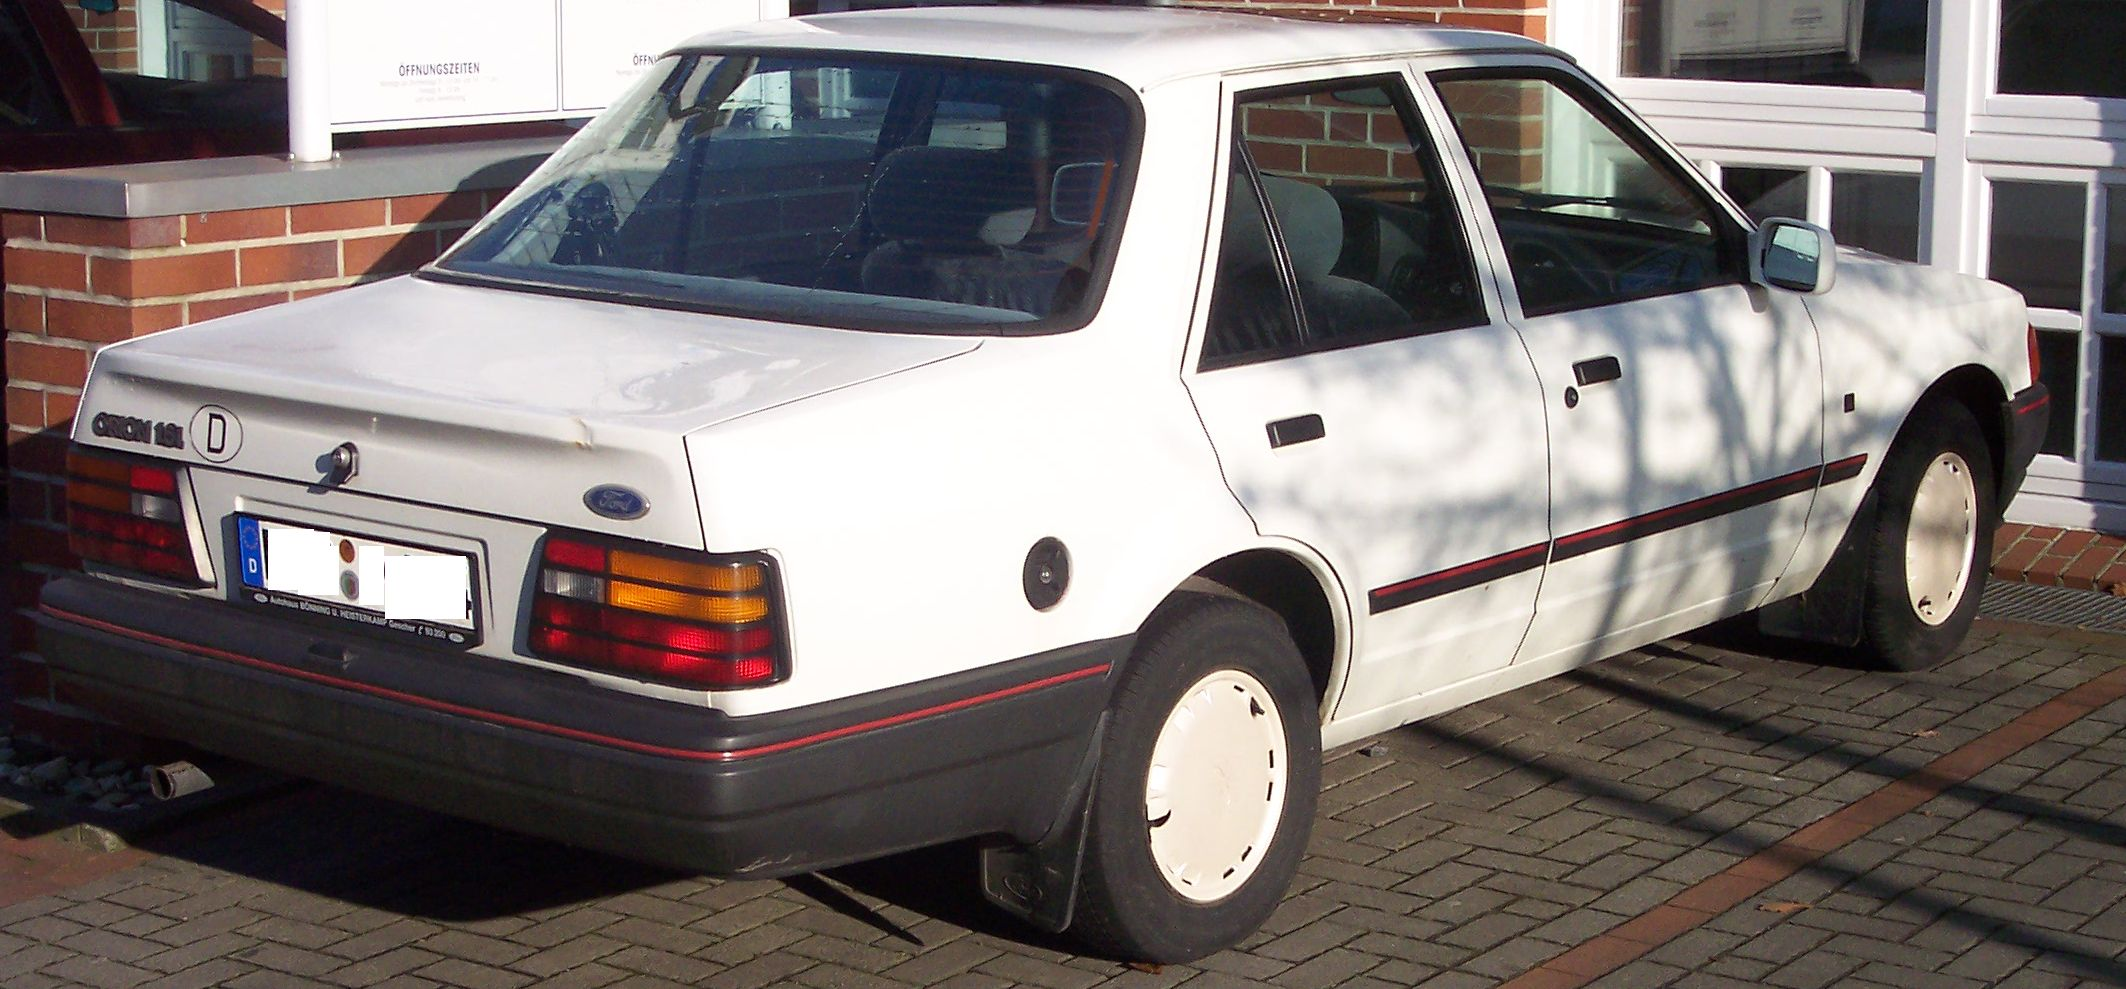 1986 Ford Orion #11